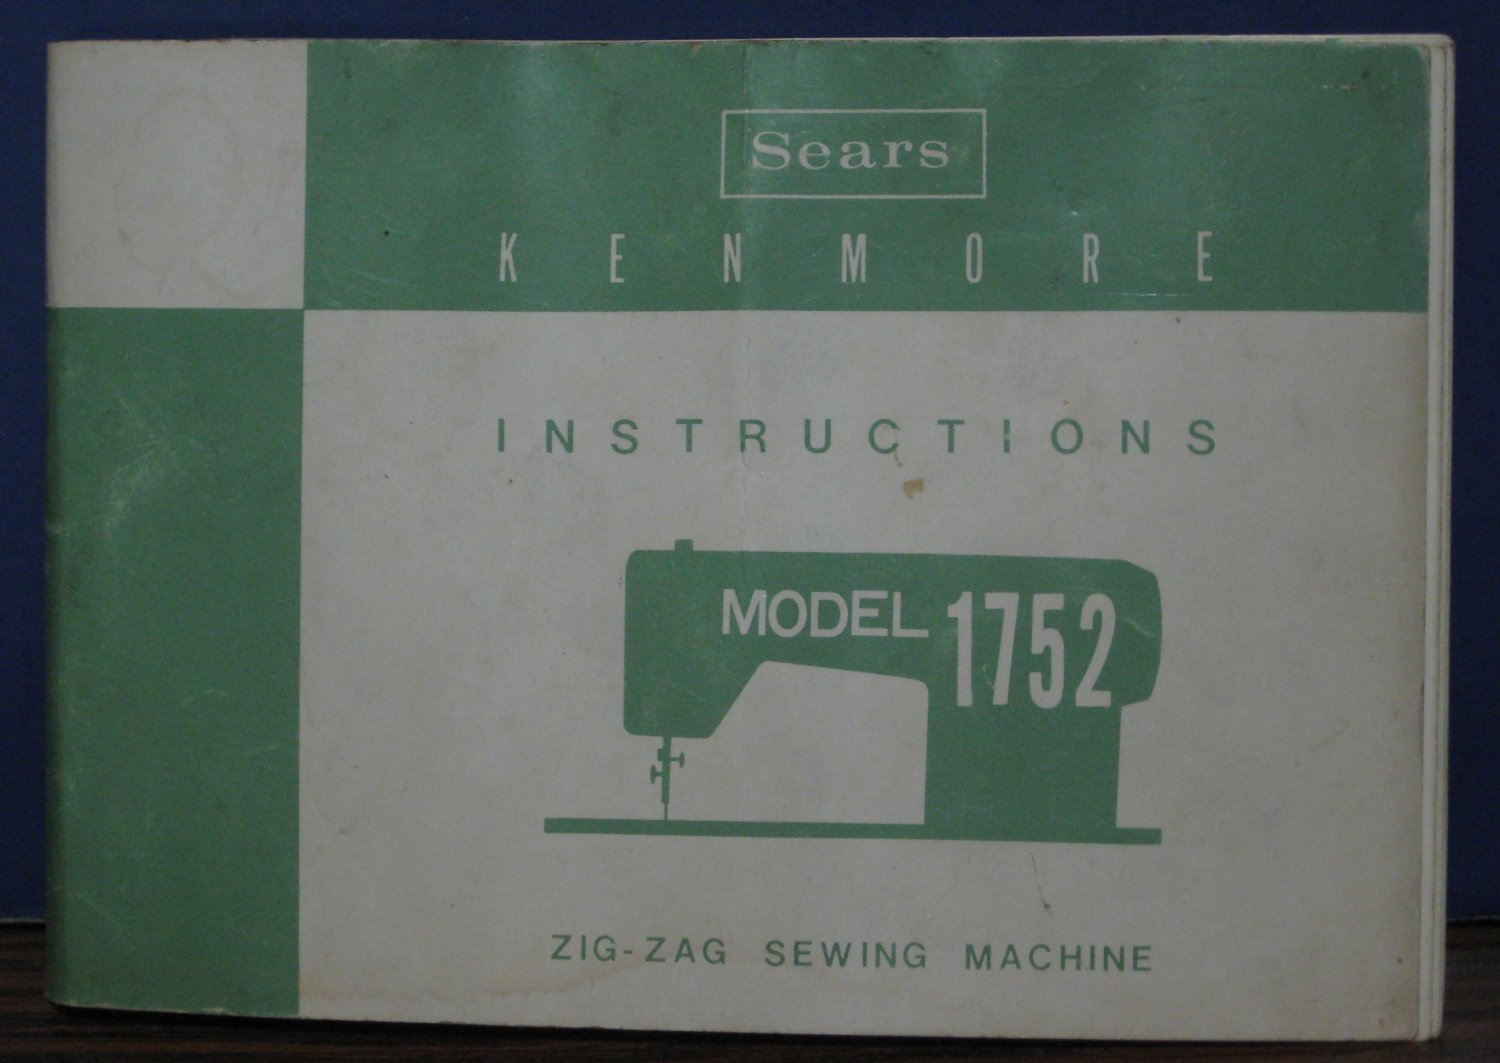 Sears Kenmore Zig Zag Sewing Machine Model 1752 Instructions Book 1969 Vintage